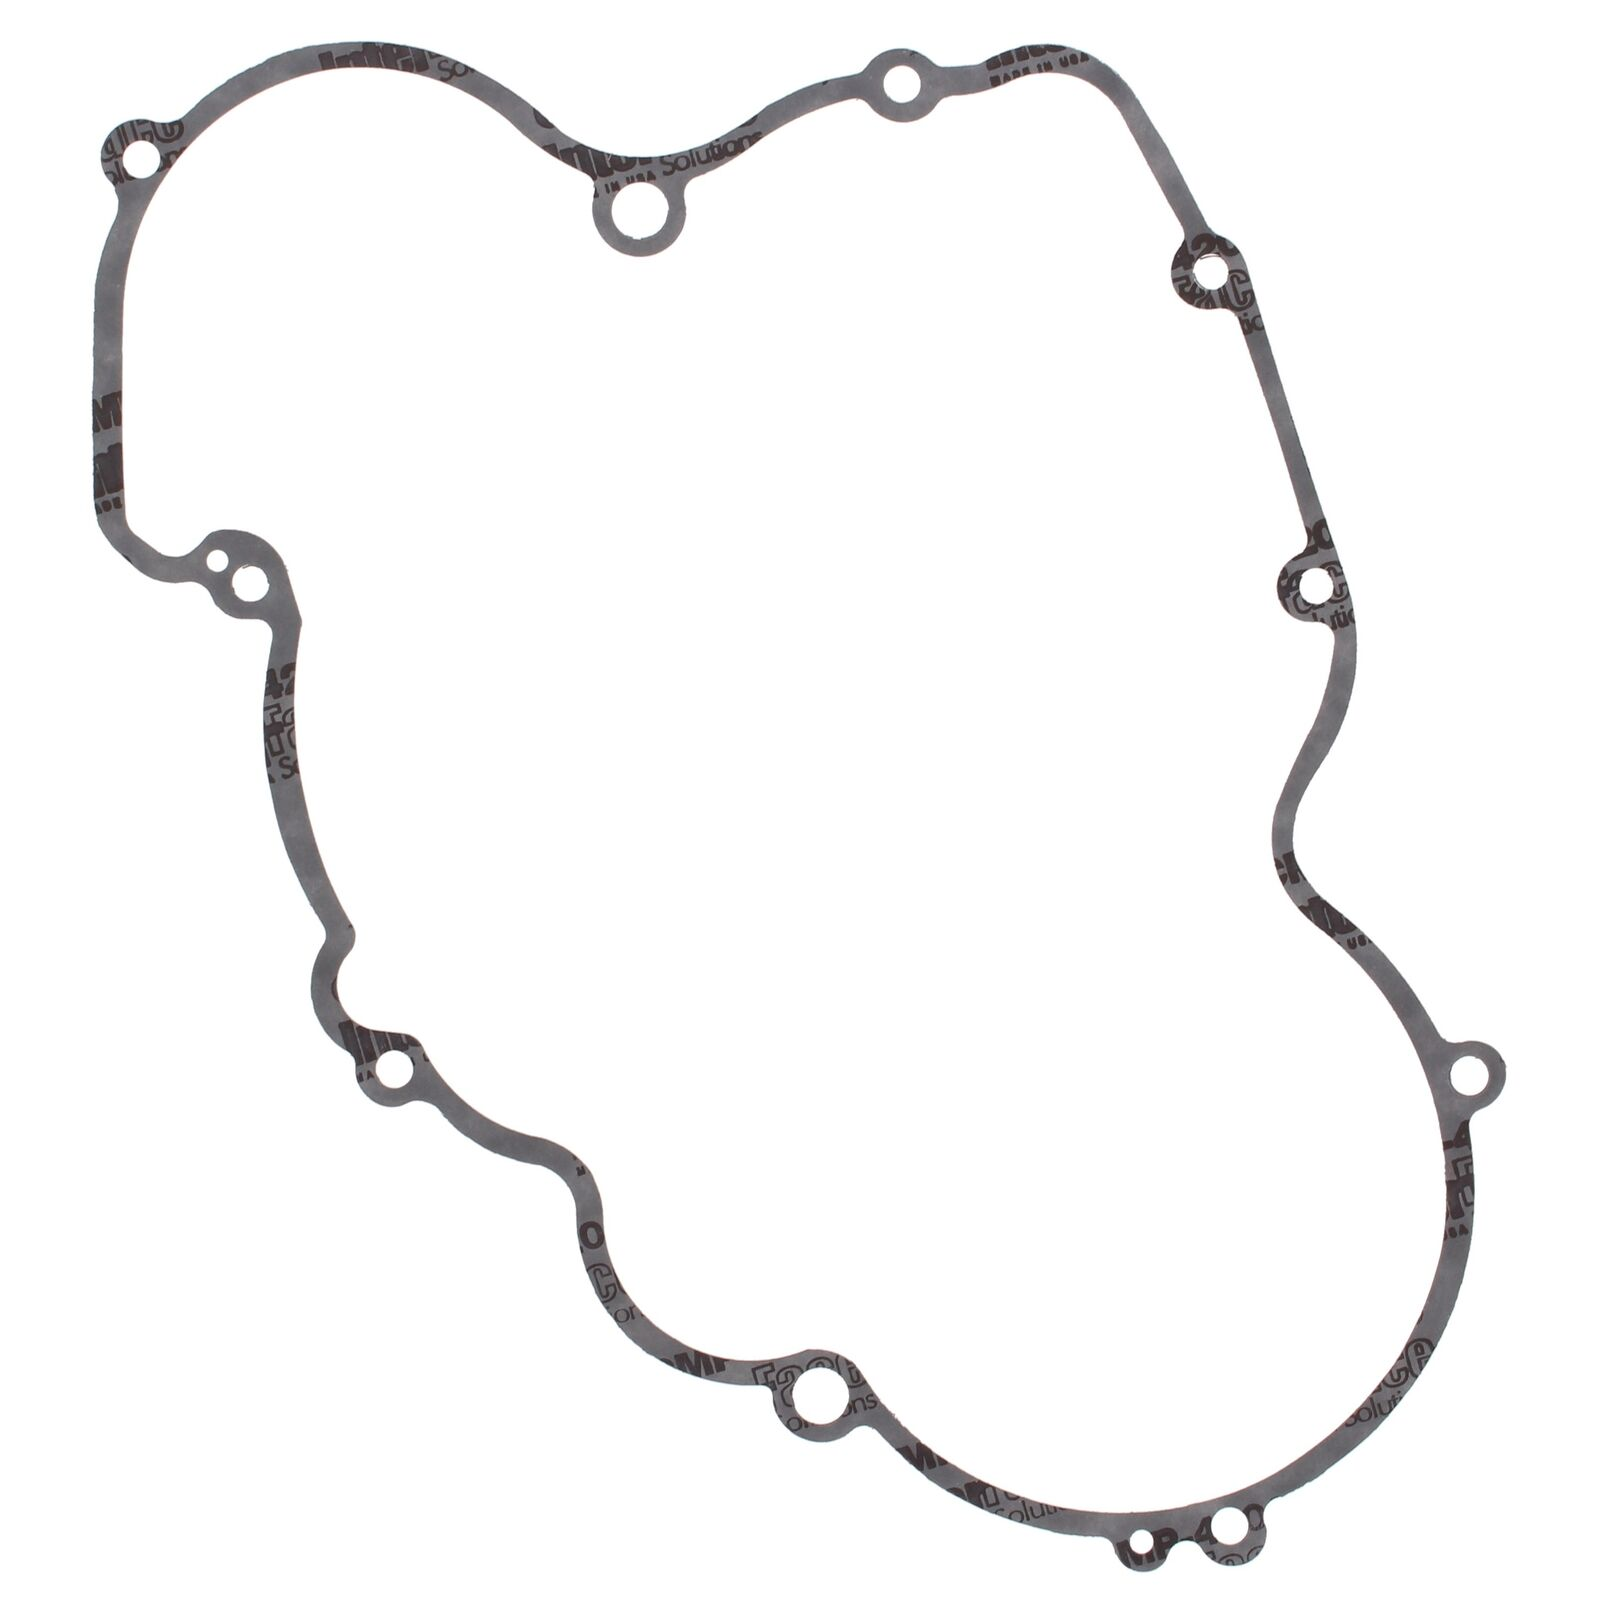 Right Side Cover Gasket Polaris Outlaw 525 IRS 525cc 2007